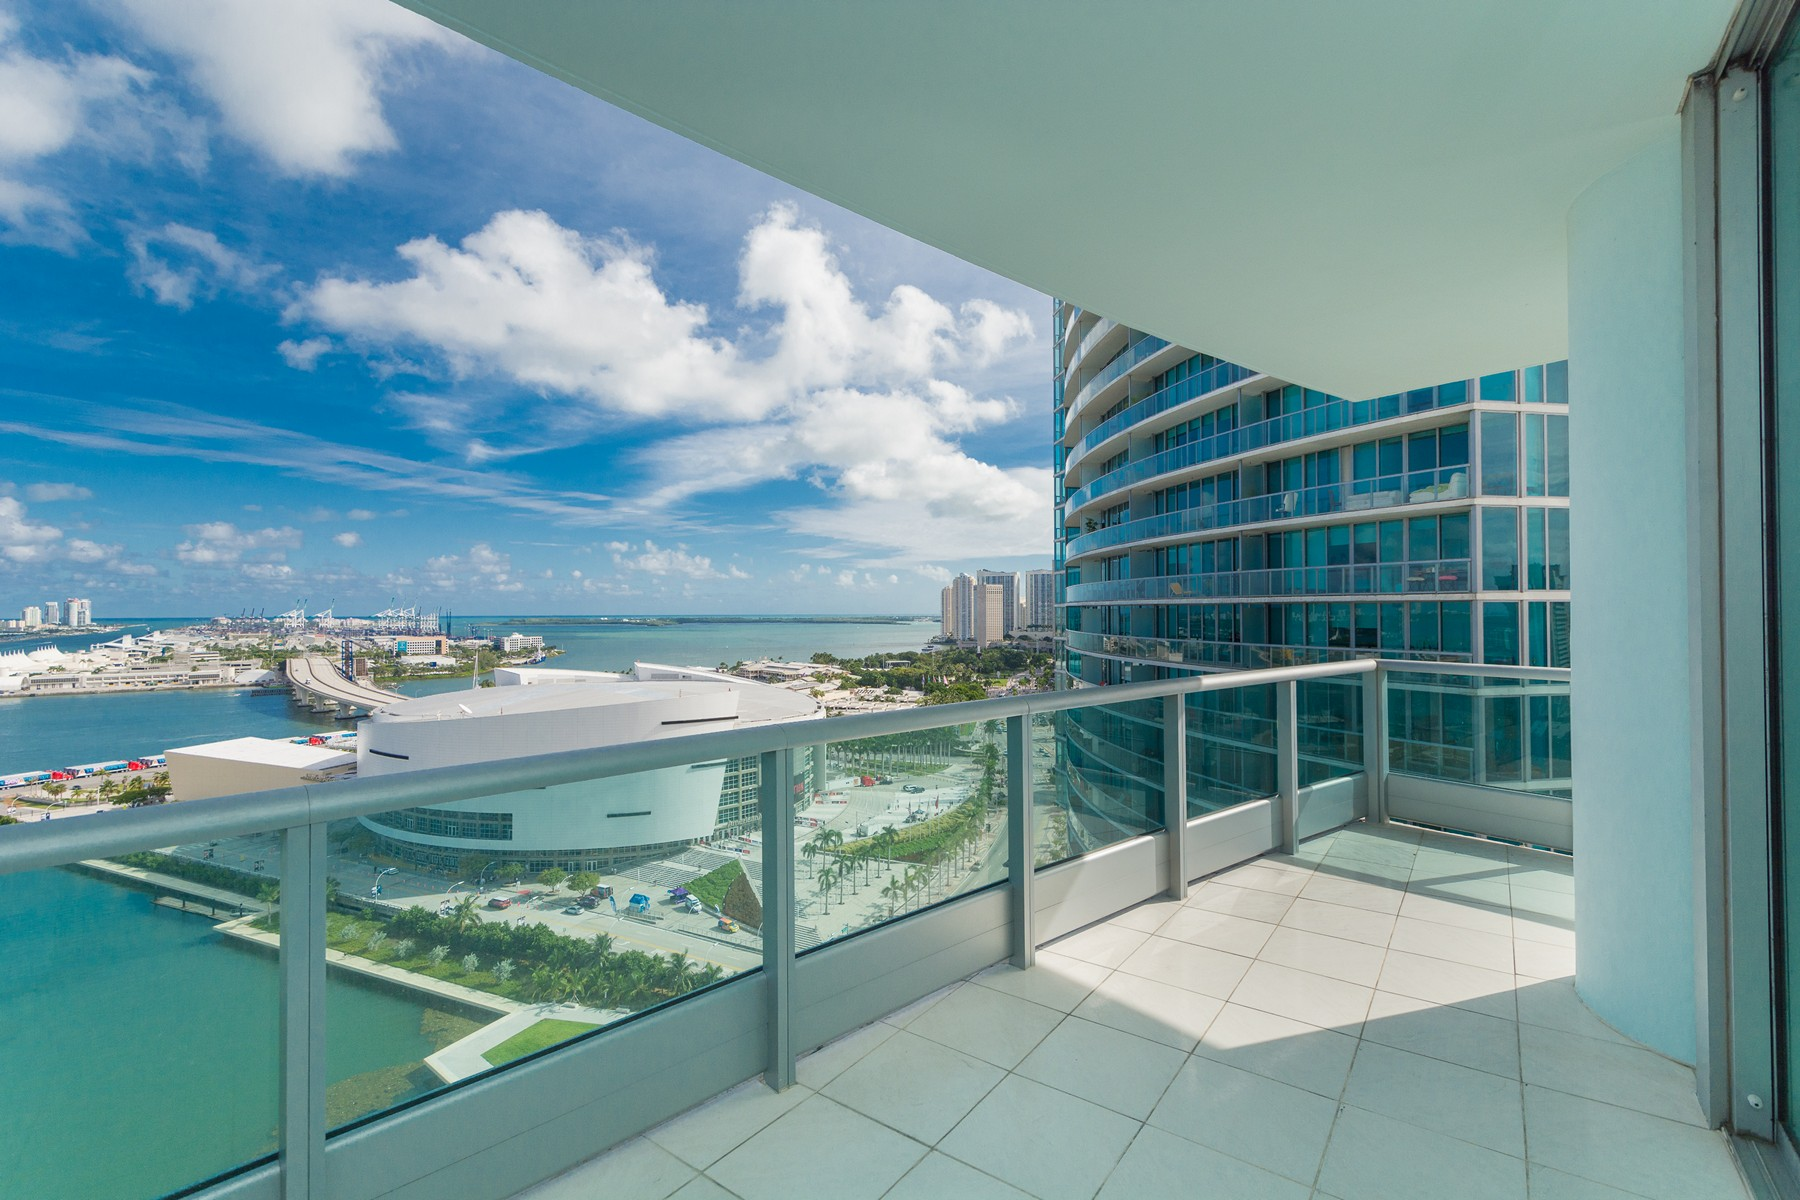 Condominium for Sale at 900 Biscayne Blvd #2501 900 Biscayne Bl 2501 Miami, Florida, 33132 United States